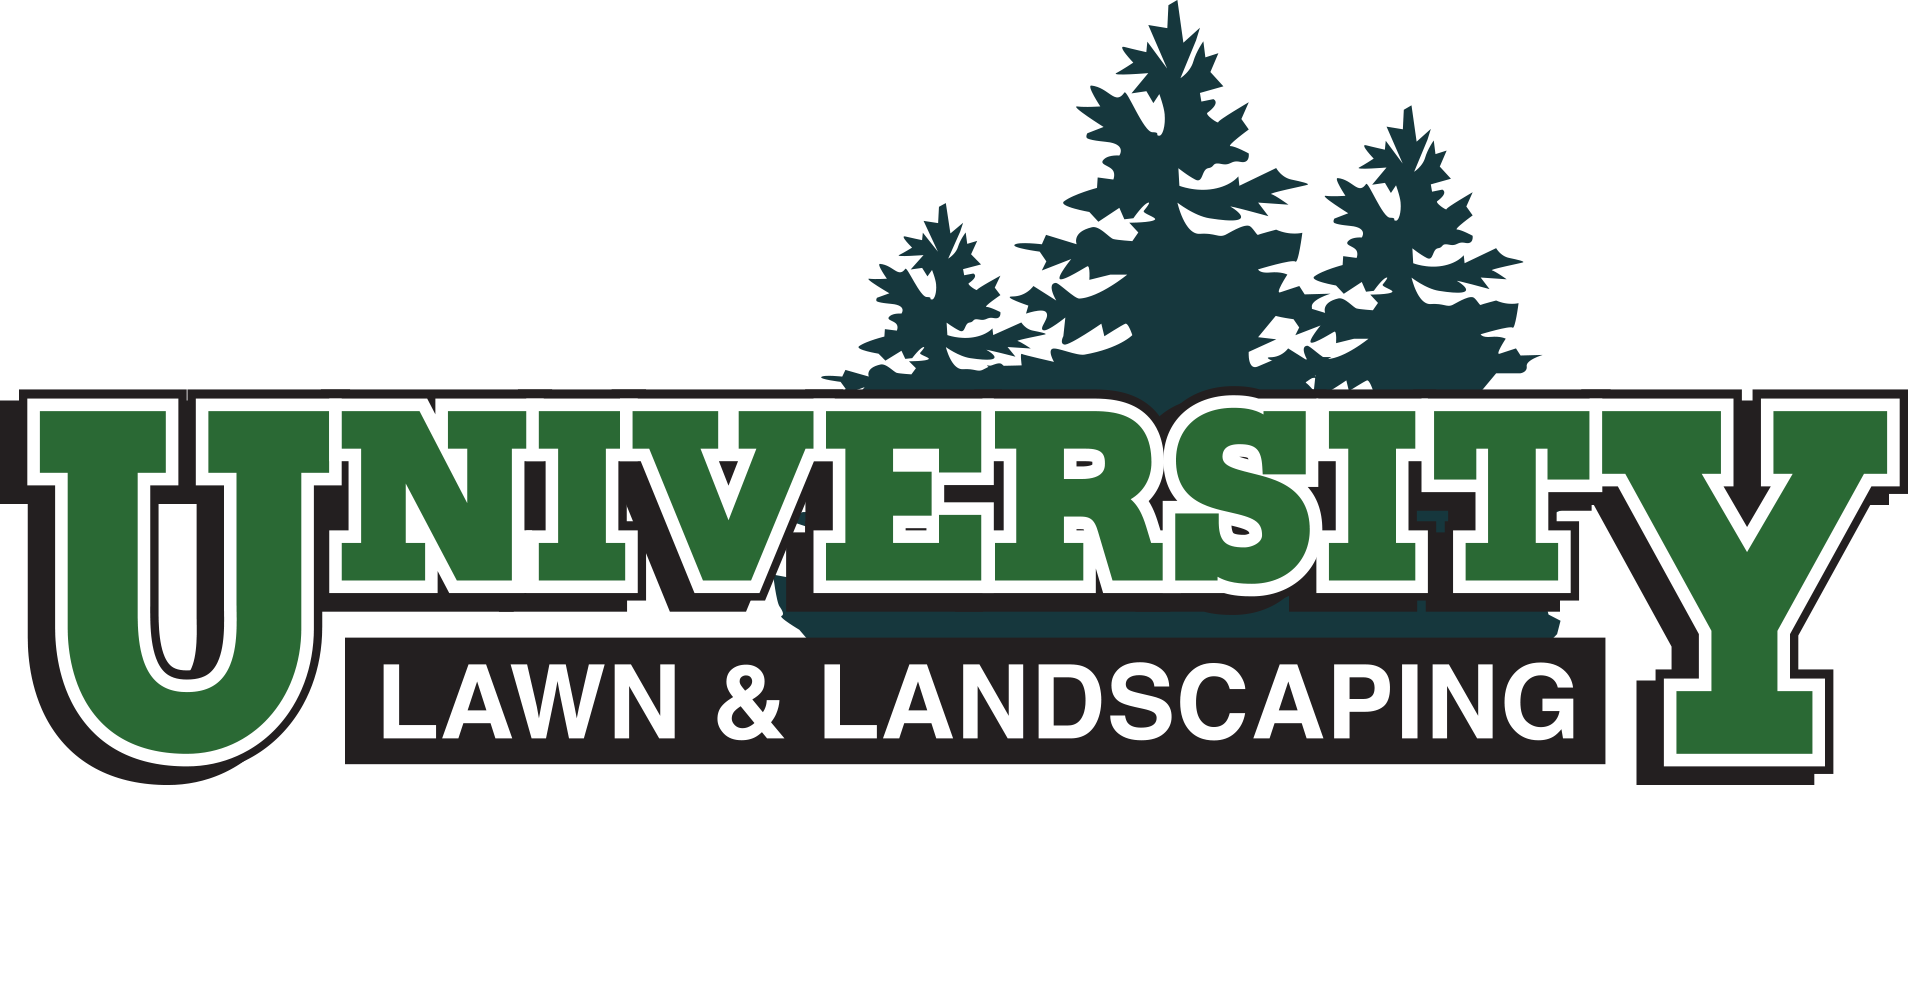 University Lawn and Landscaping